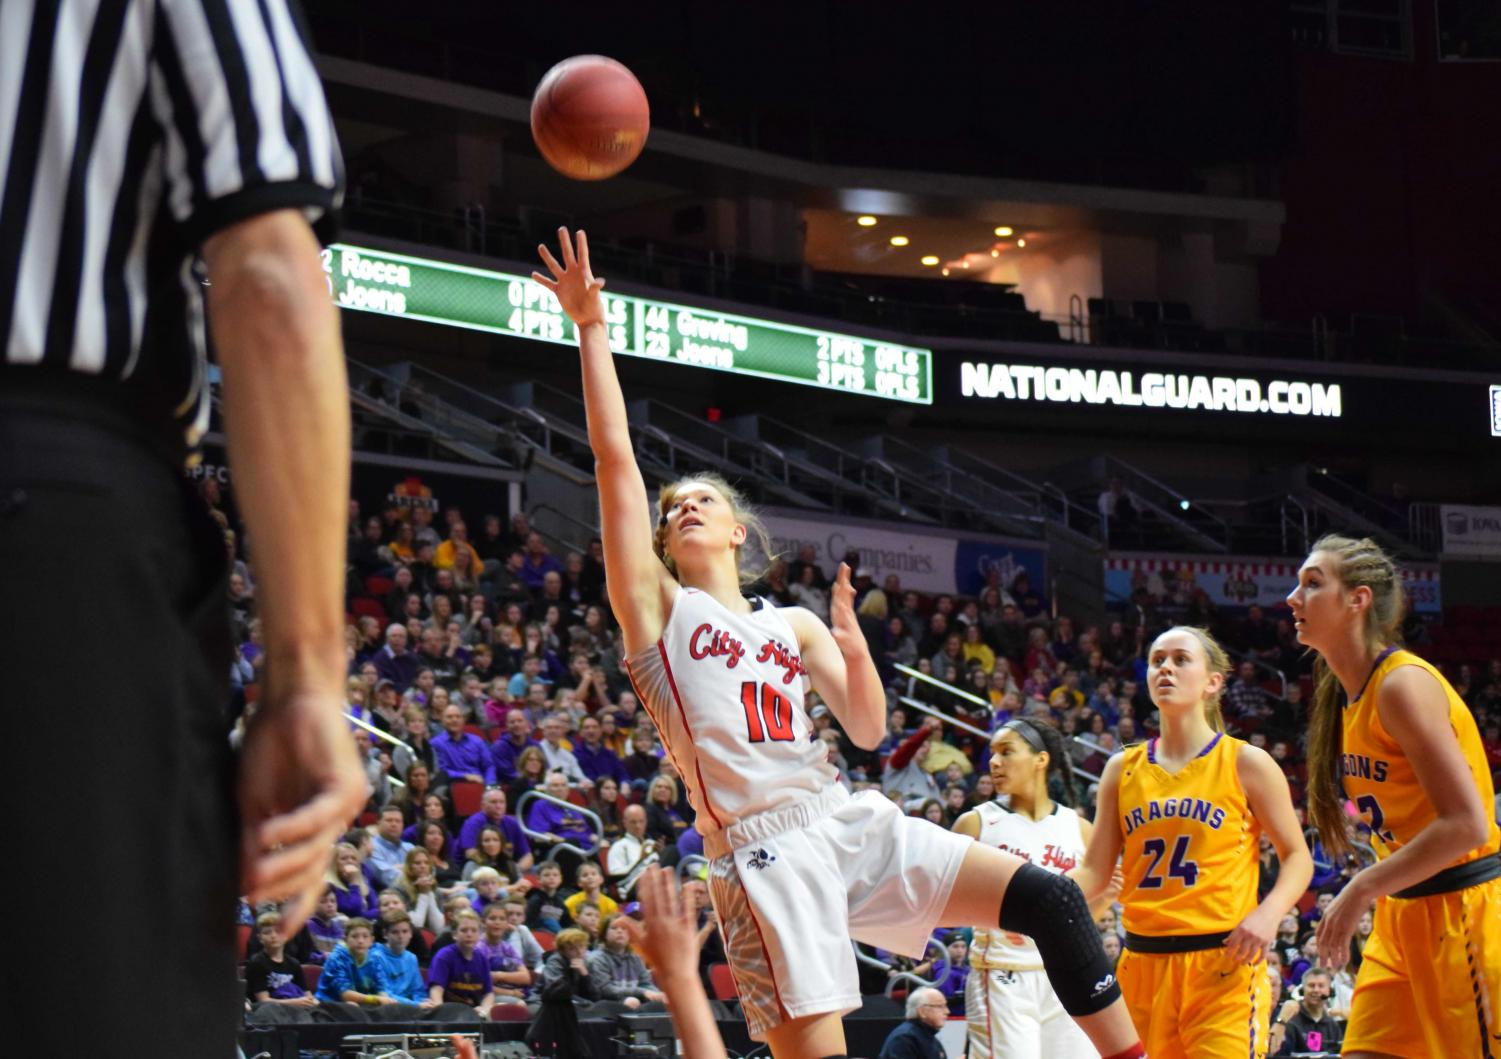 Joens went 8-12 in the victory to score 24 points and break the state tournament scoring record .